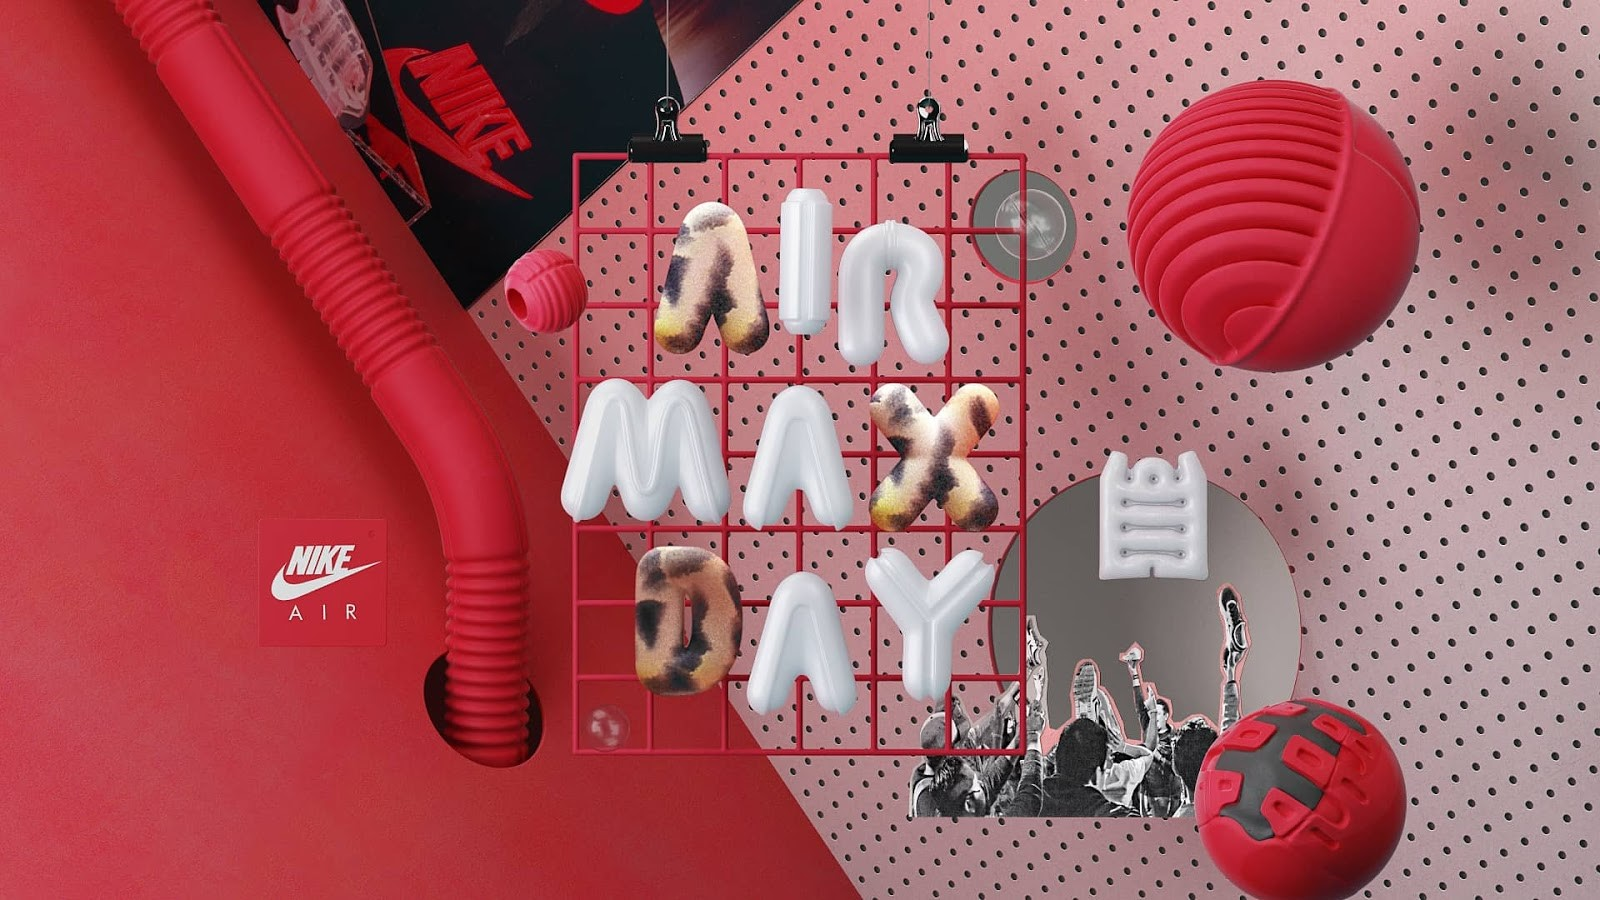 3D typeface for Nike's Air Max Day